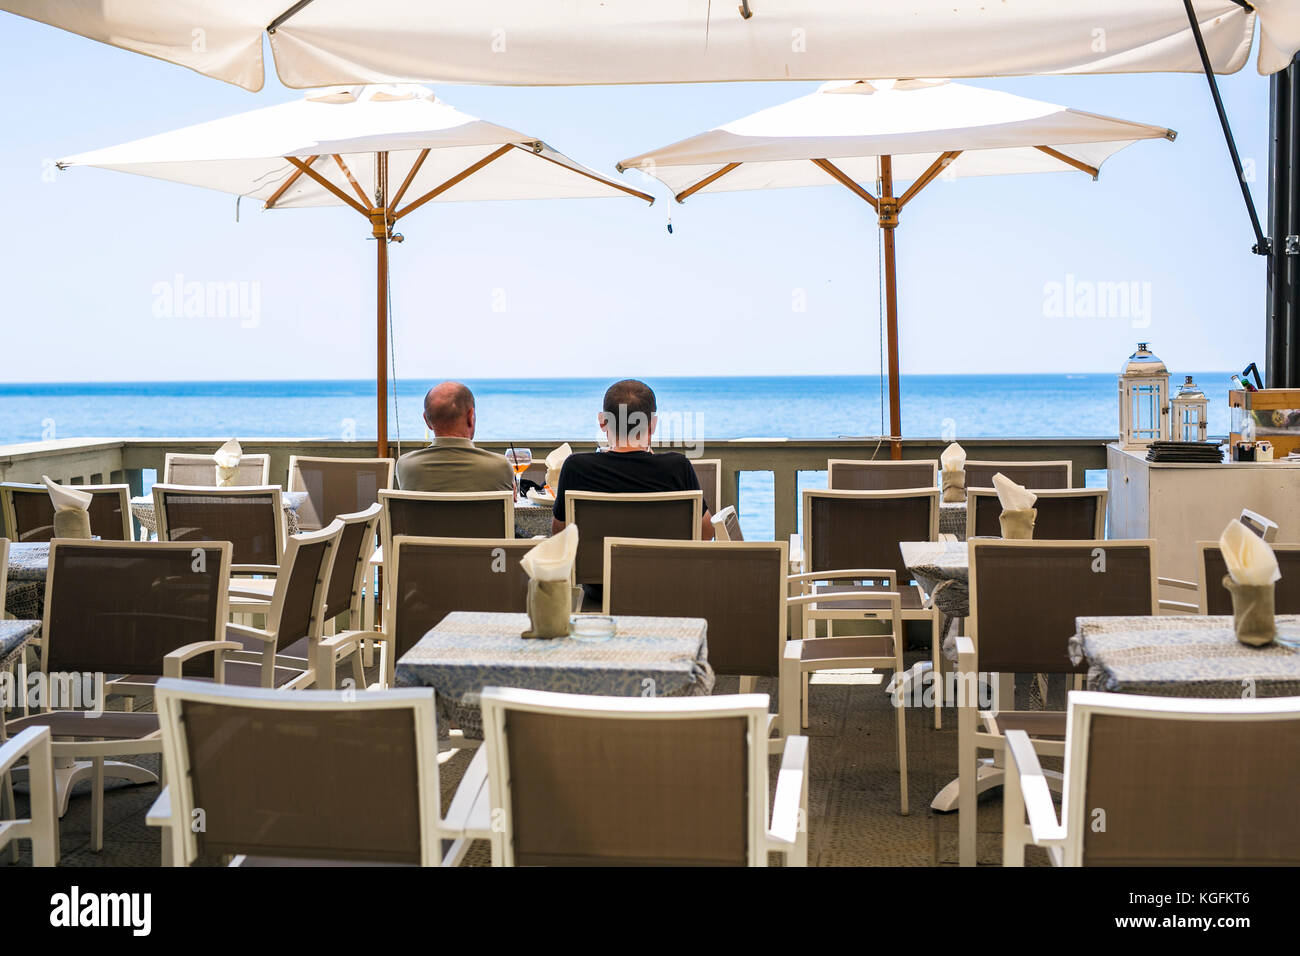 Friends sitting in a bar in font of the méditerranéen ocean looking out. - Stock Image